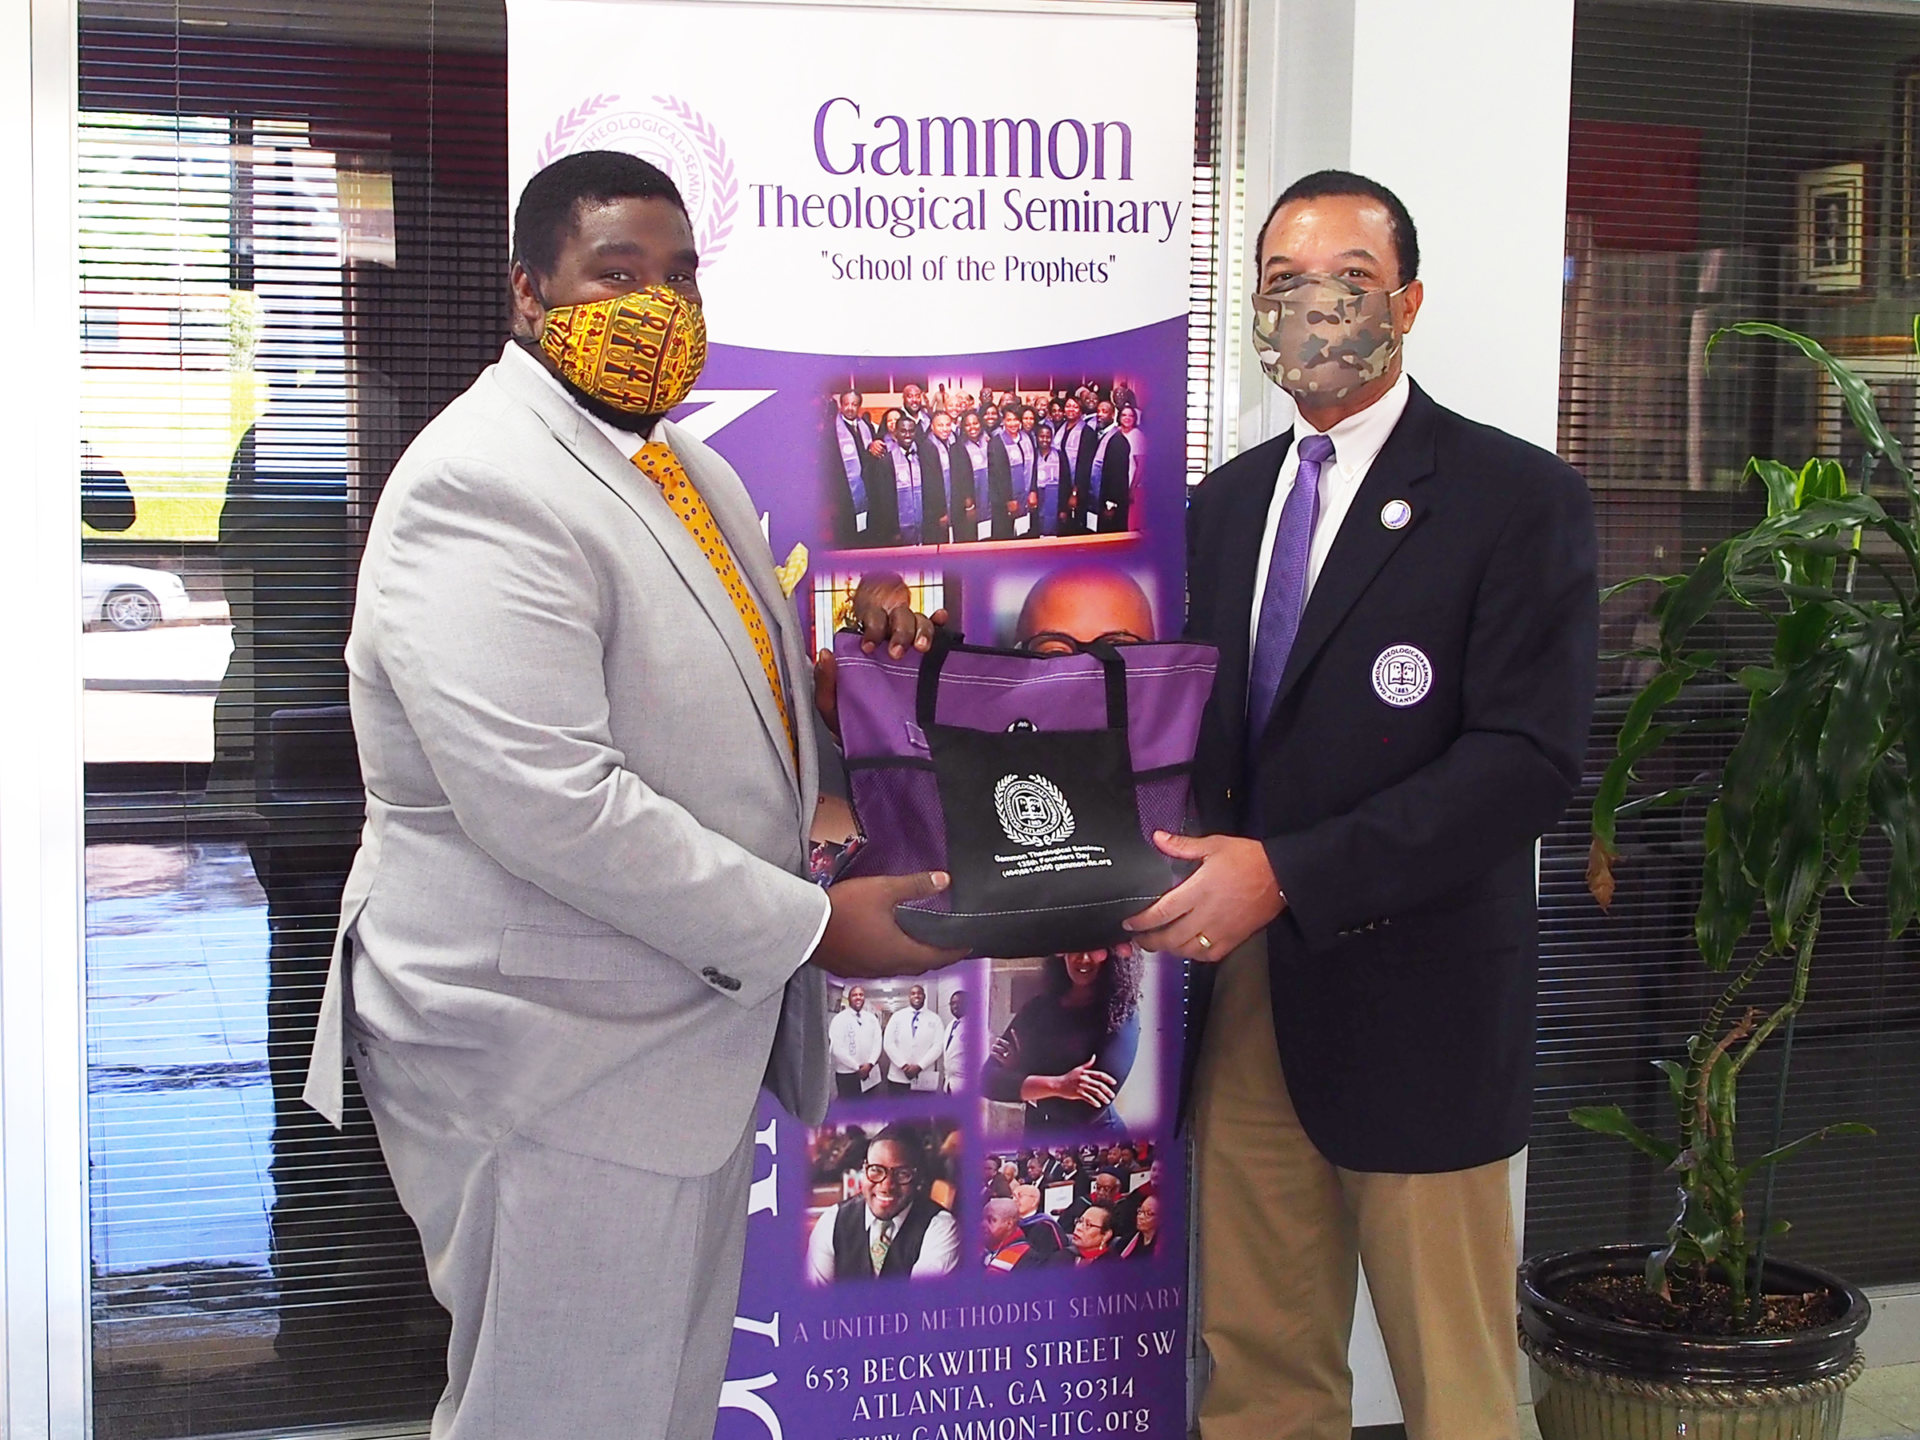 Pictured: Gammon President Dean Dr. Ken J. Walden (right) presents 2020 graduate Rev. Paul McReynolds with a special graduation gift. Photo by Horace Henry